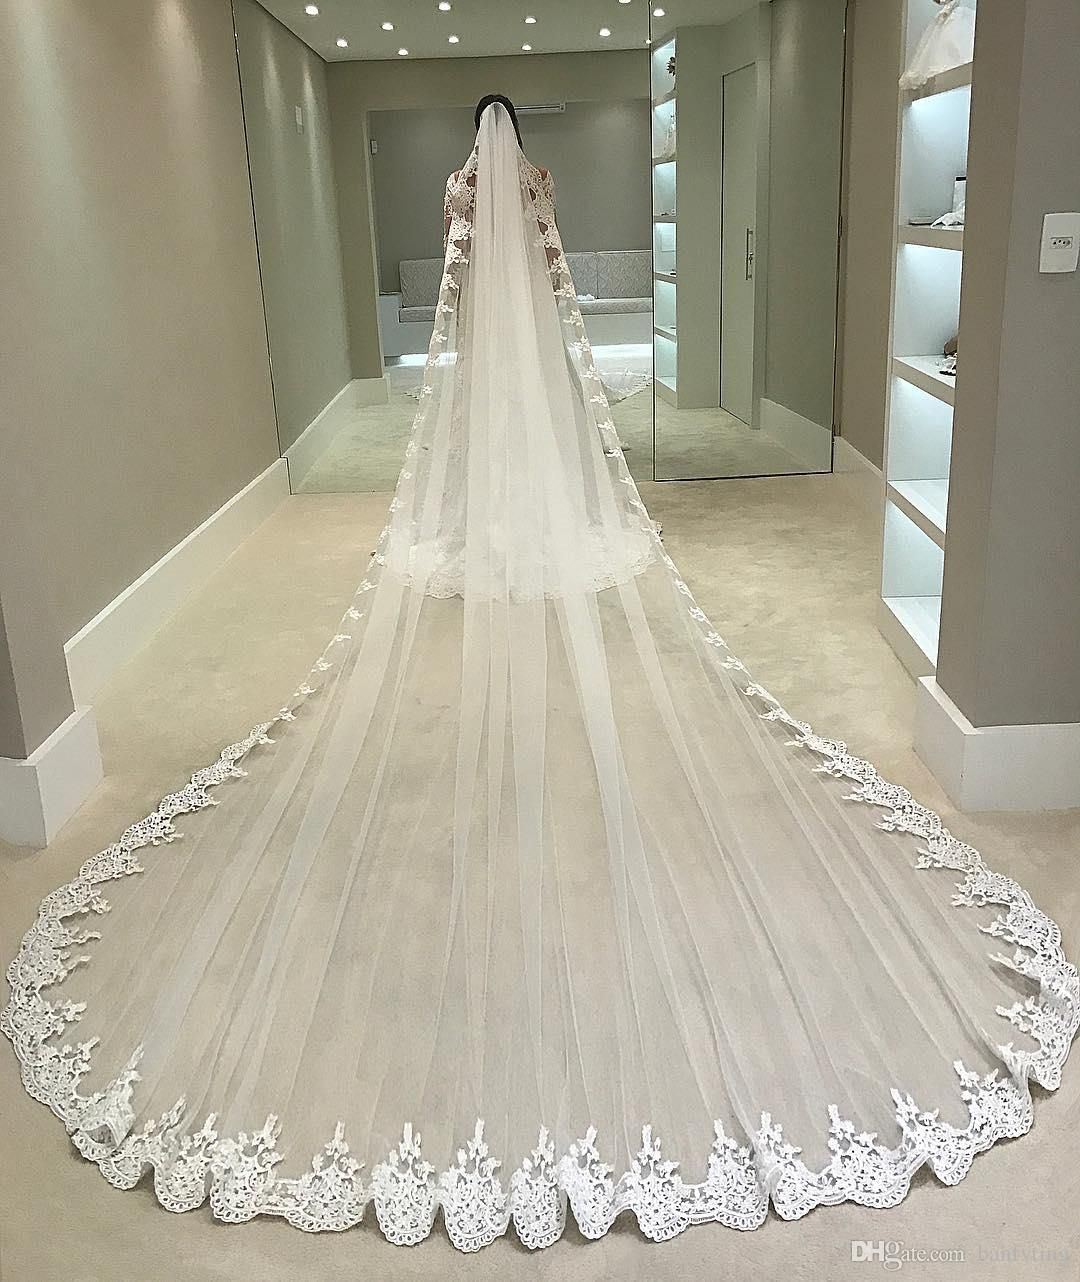 I Want An Extremely Long Veil Wedding Veils Lace Long Veil Wedding Tulle Bridal Veil